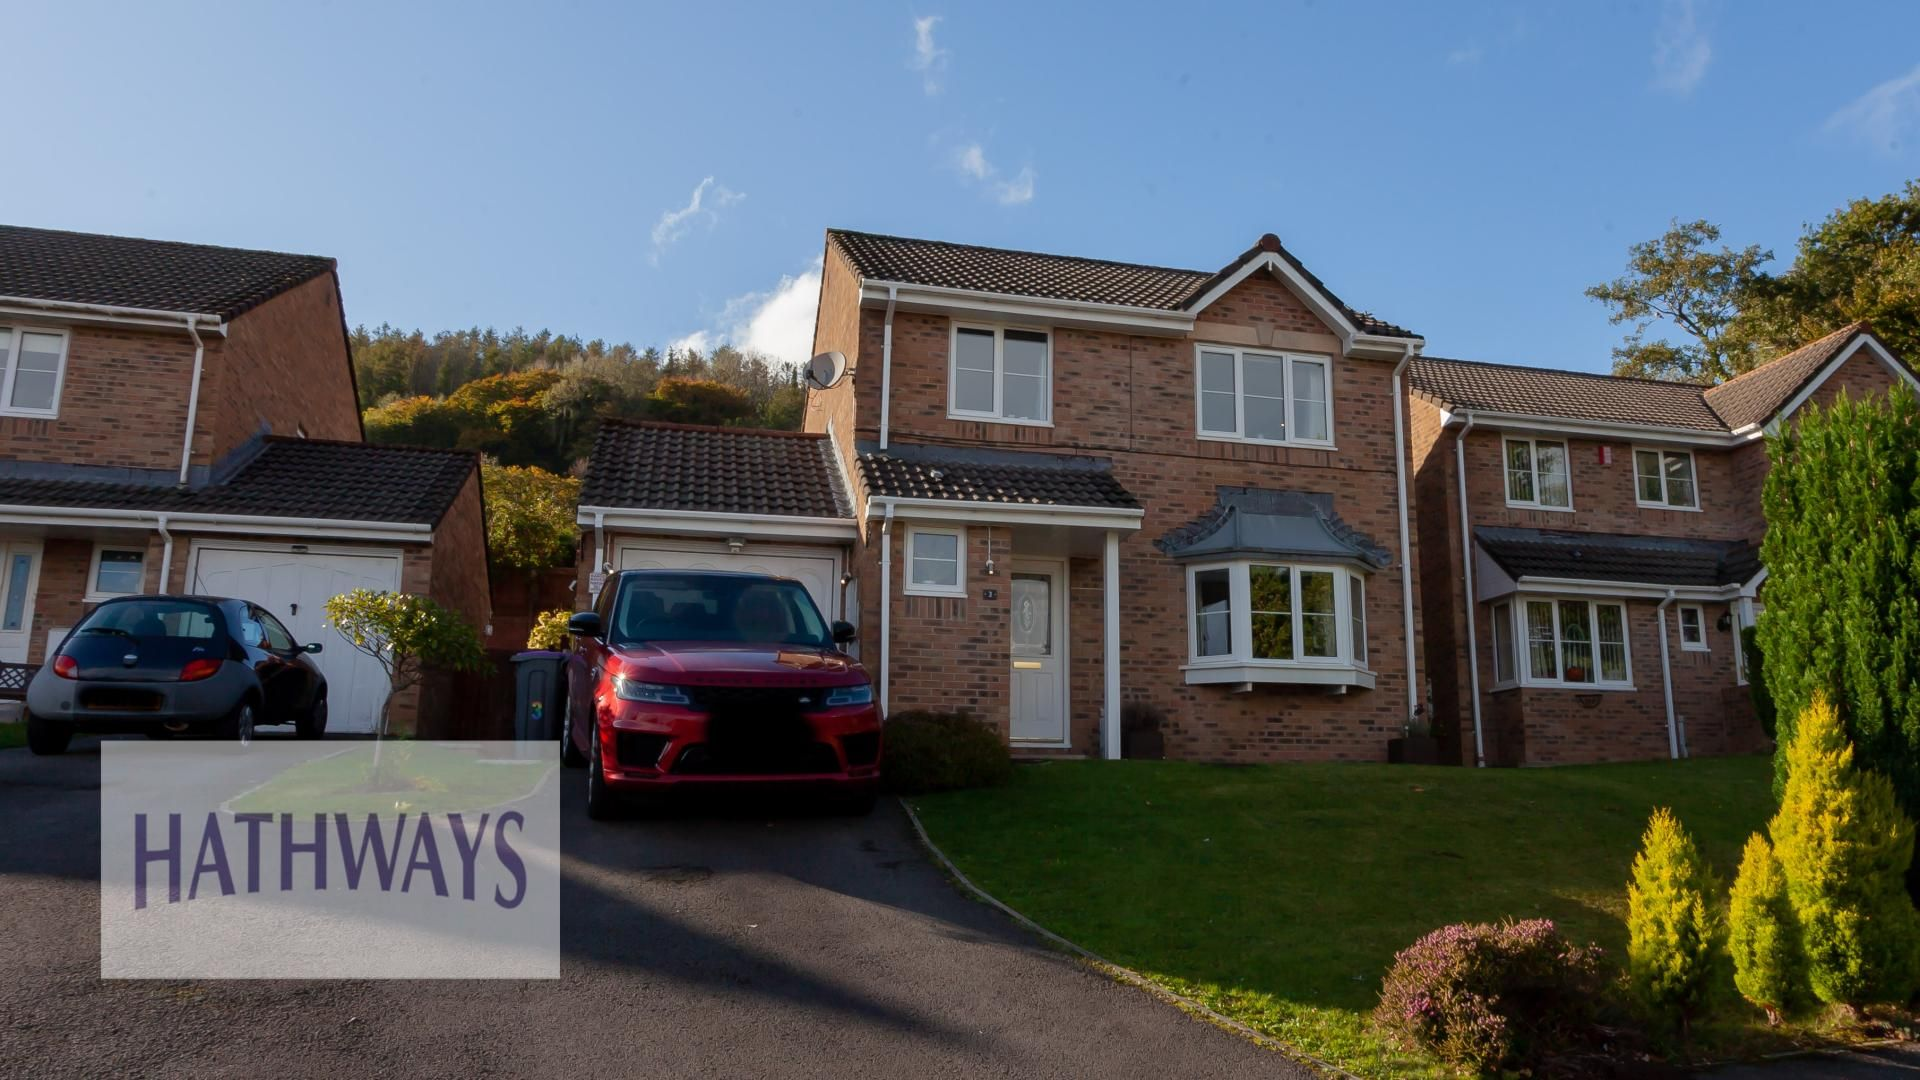 3 bed house for sale in Dorallt Close, NP44